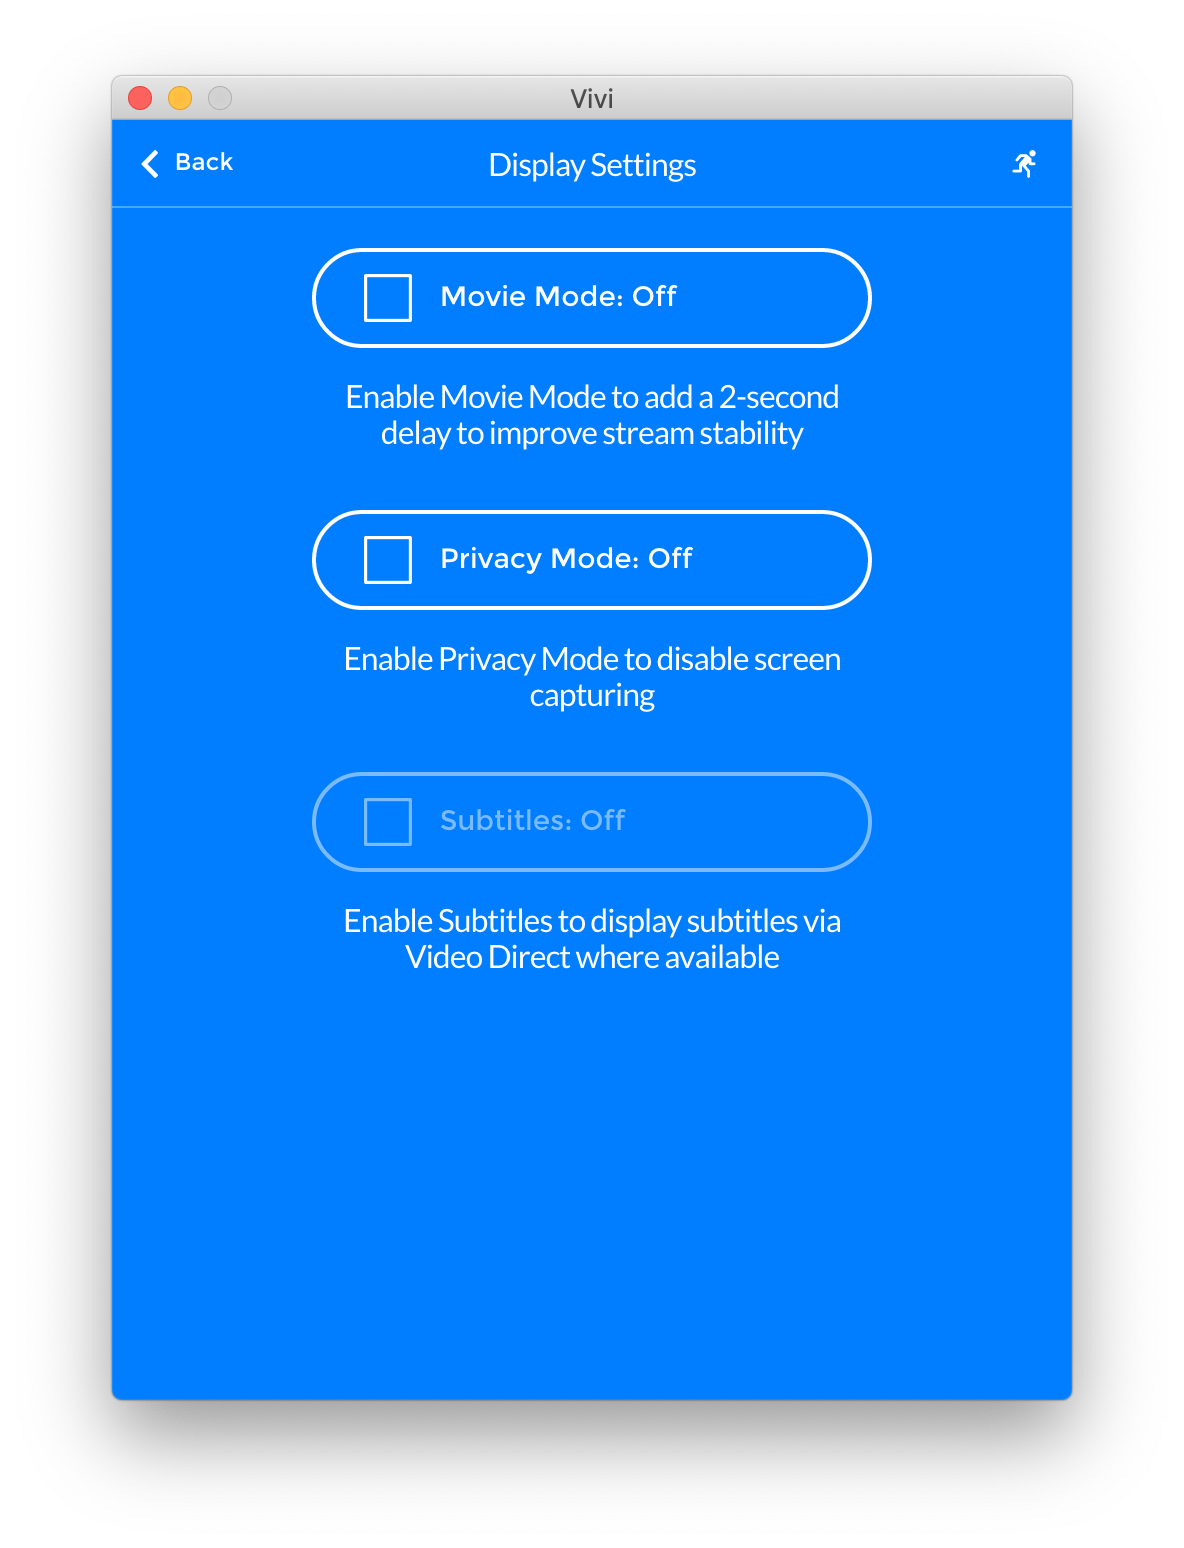 Updates to Privacy Mode in the Vivi App